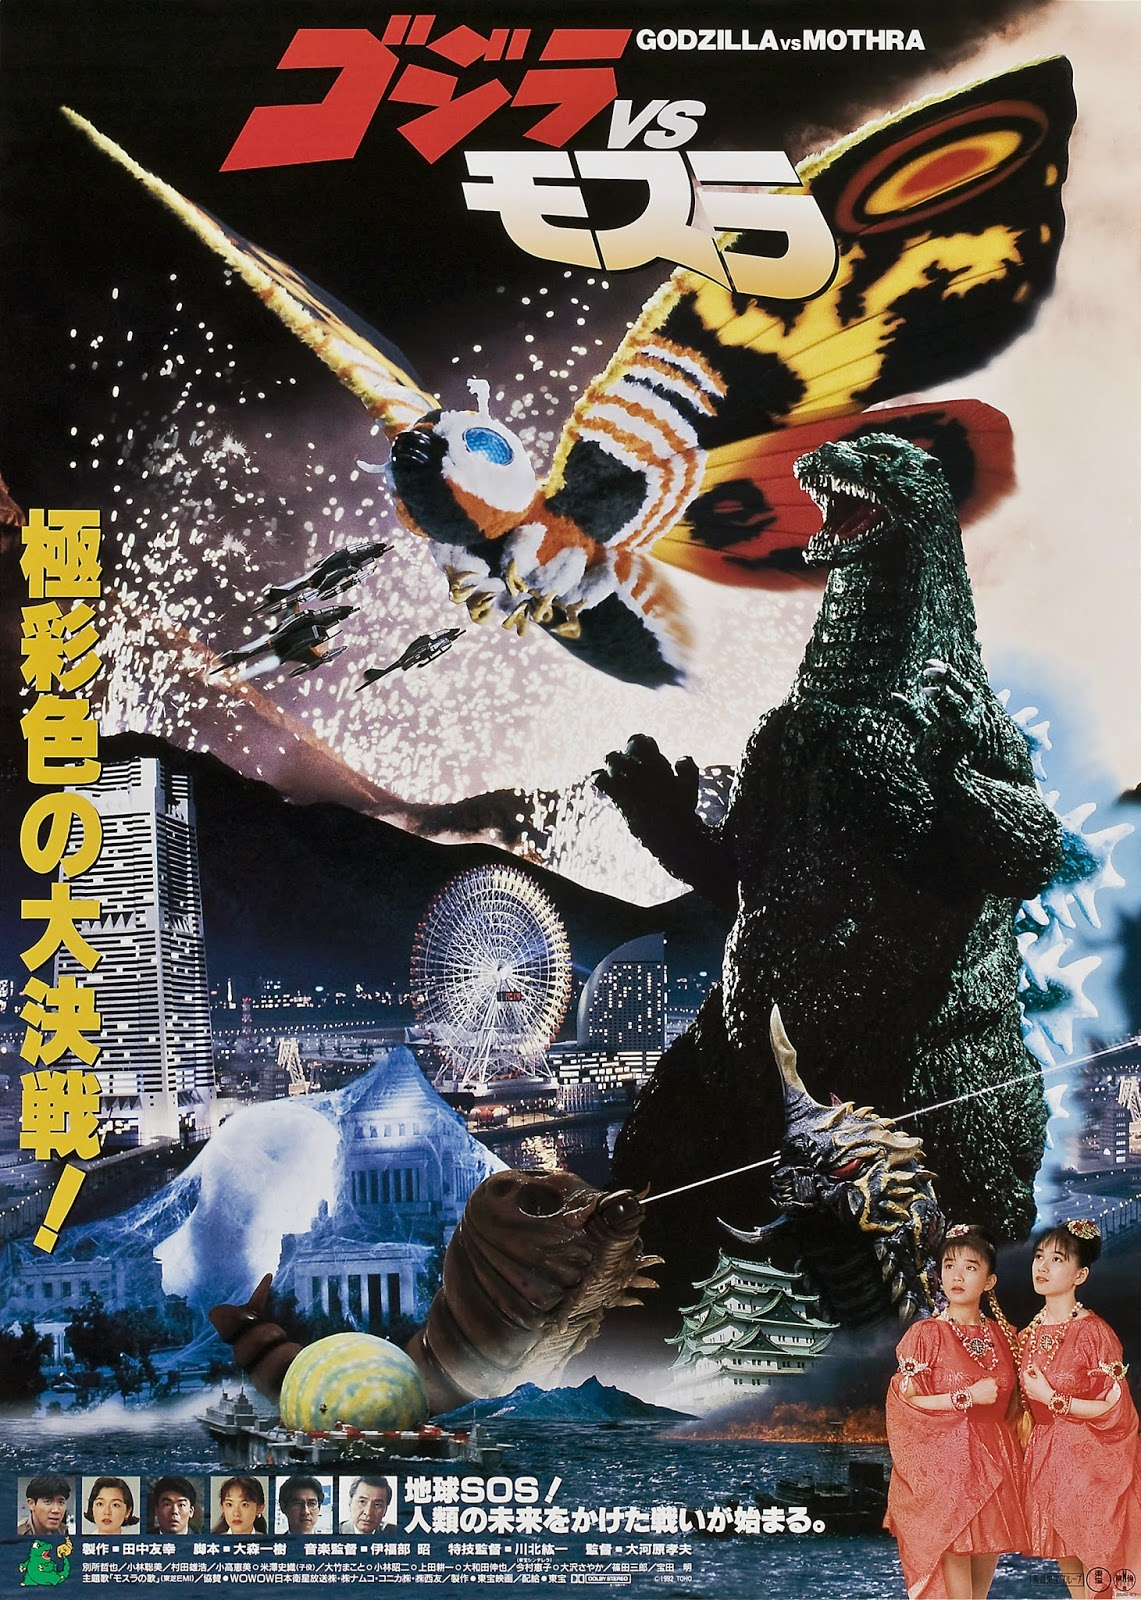 Japanese poster for Godzilla and Mothra: The Battle For Earth